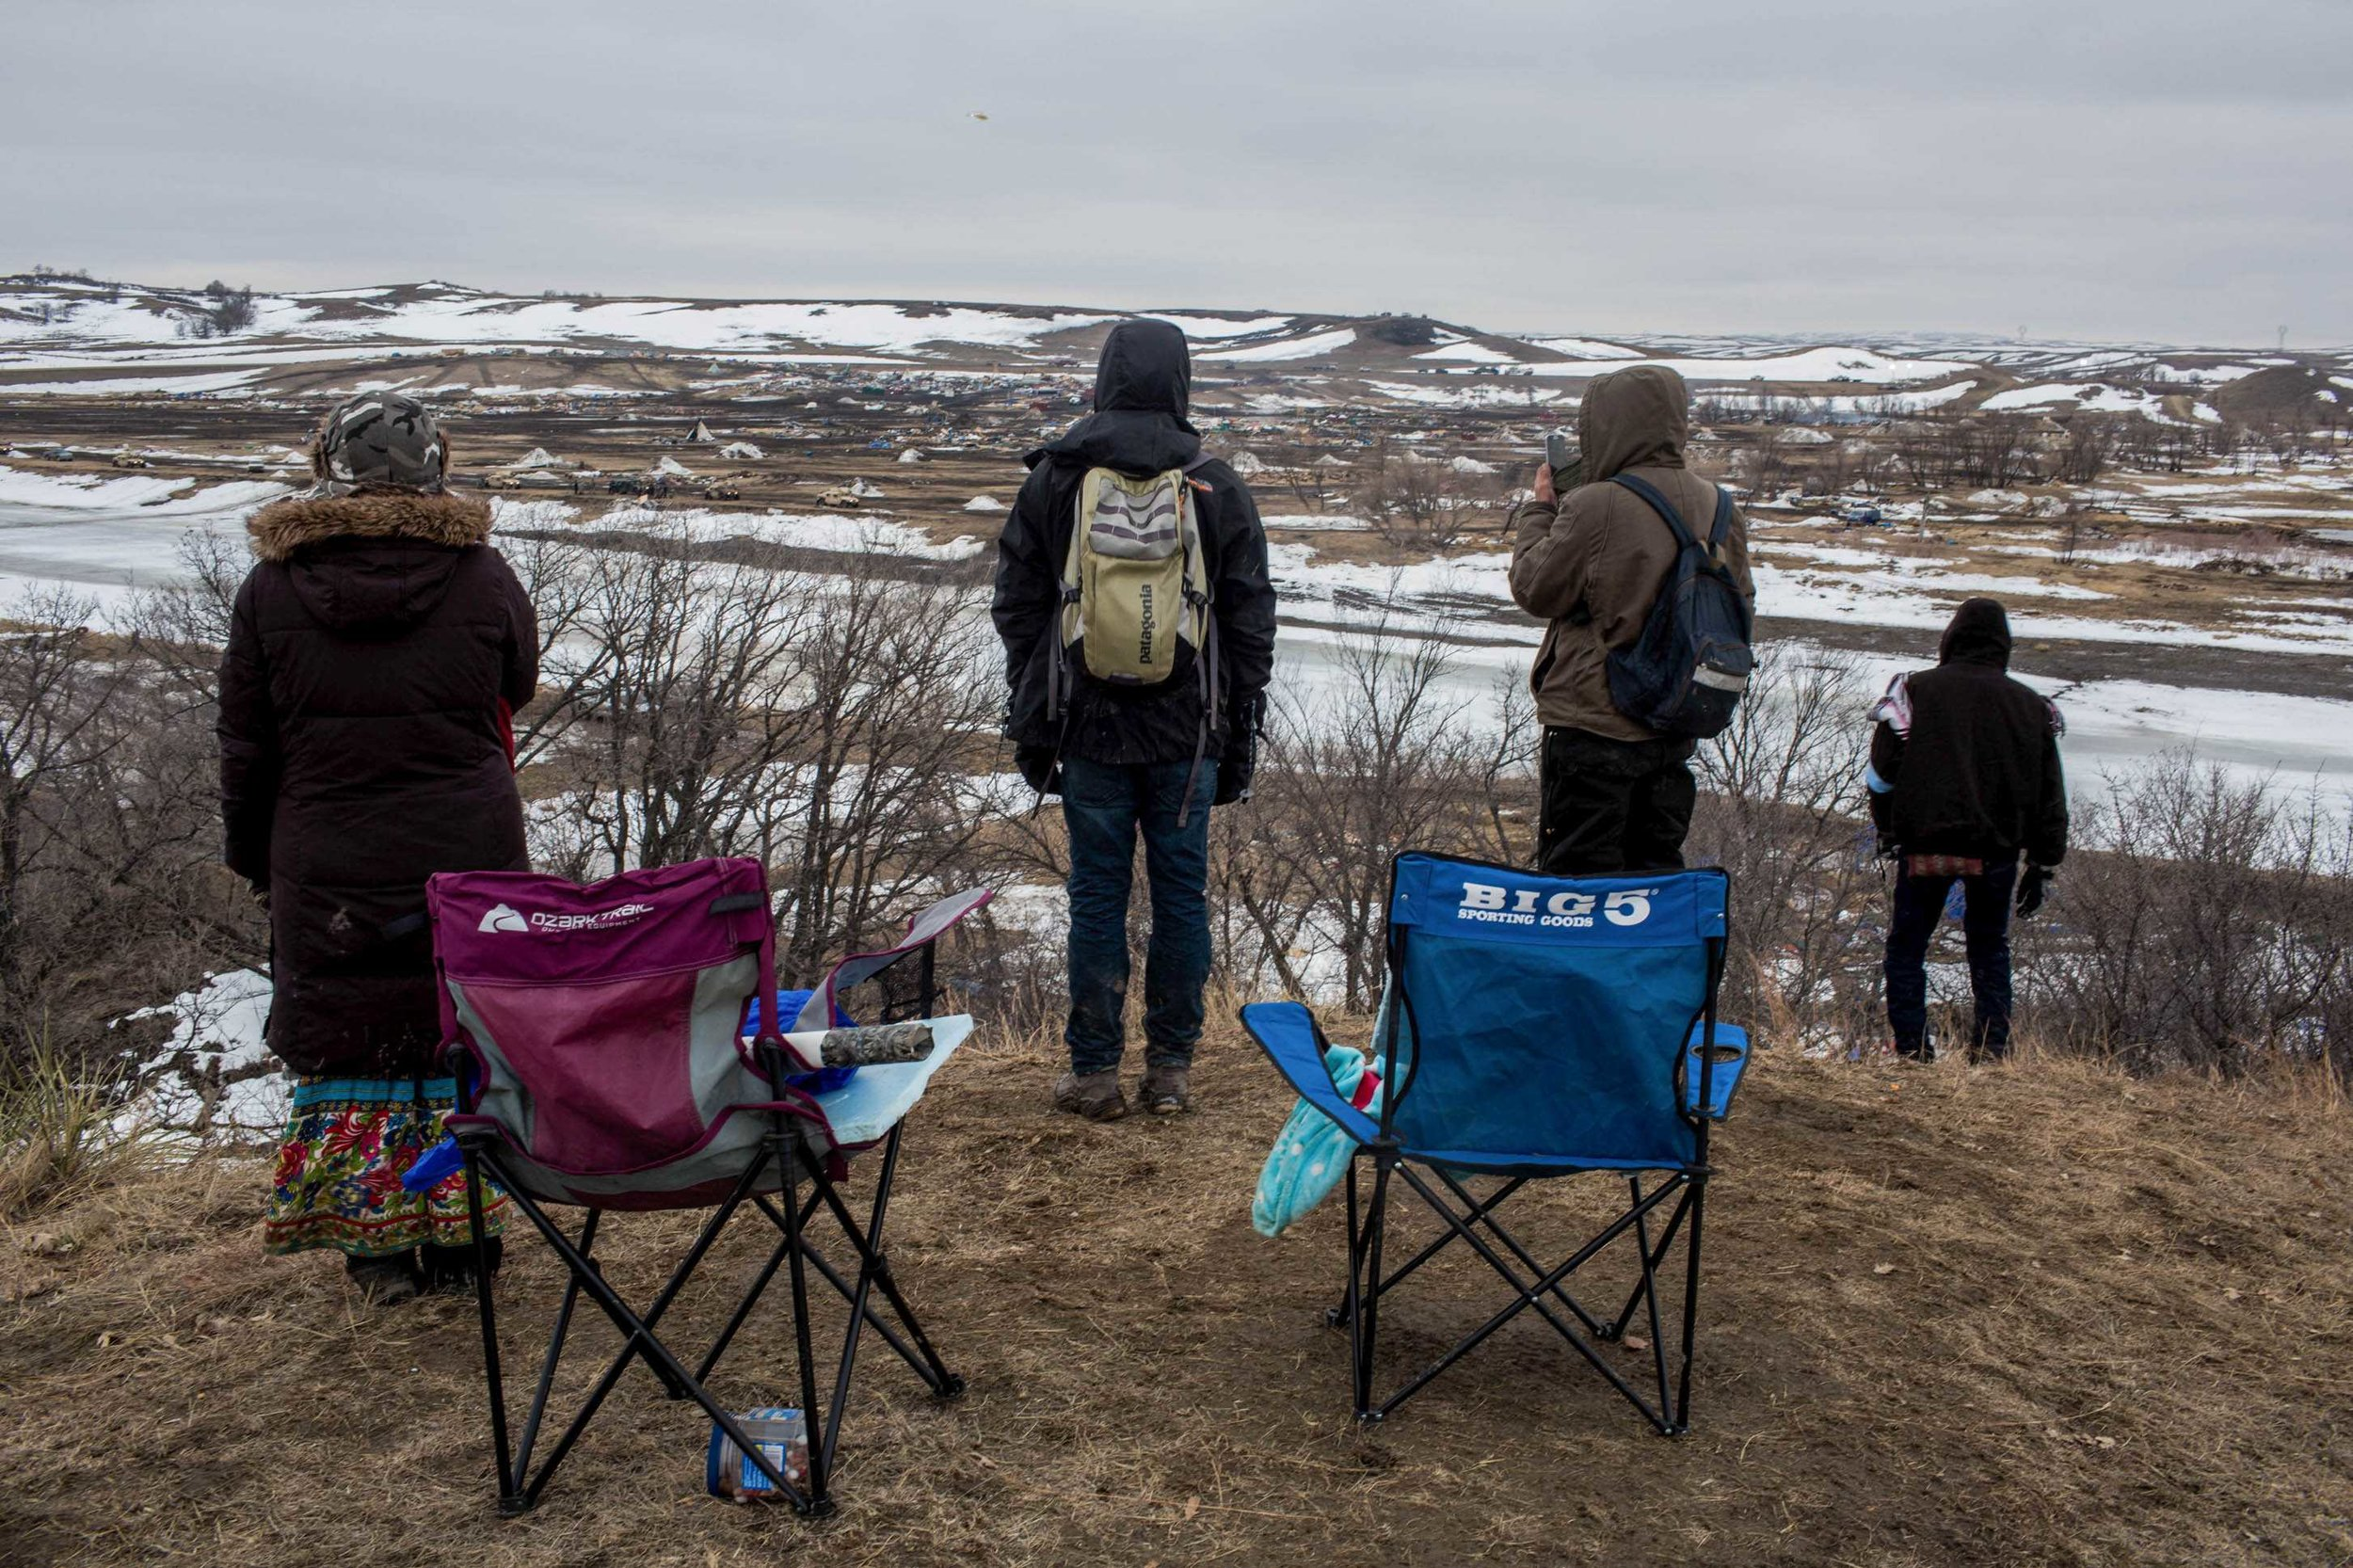 Water Protectors stand on the hill overlooking Oceti Sakowin, watching highly militarized BIA, ATF and Morton County Sheriffs bulldoze the remains of the camp several hours after the raid on Wednesday morning. Wednesday February 23rd 2017, Sacred Stone Camp, North Dakota. Photo by Ruth Lorio.